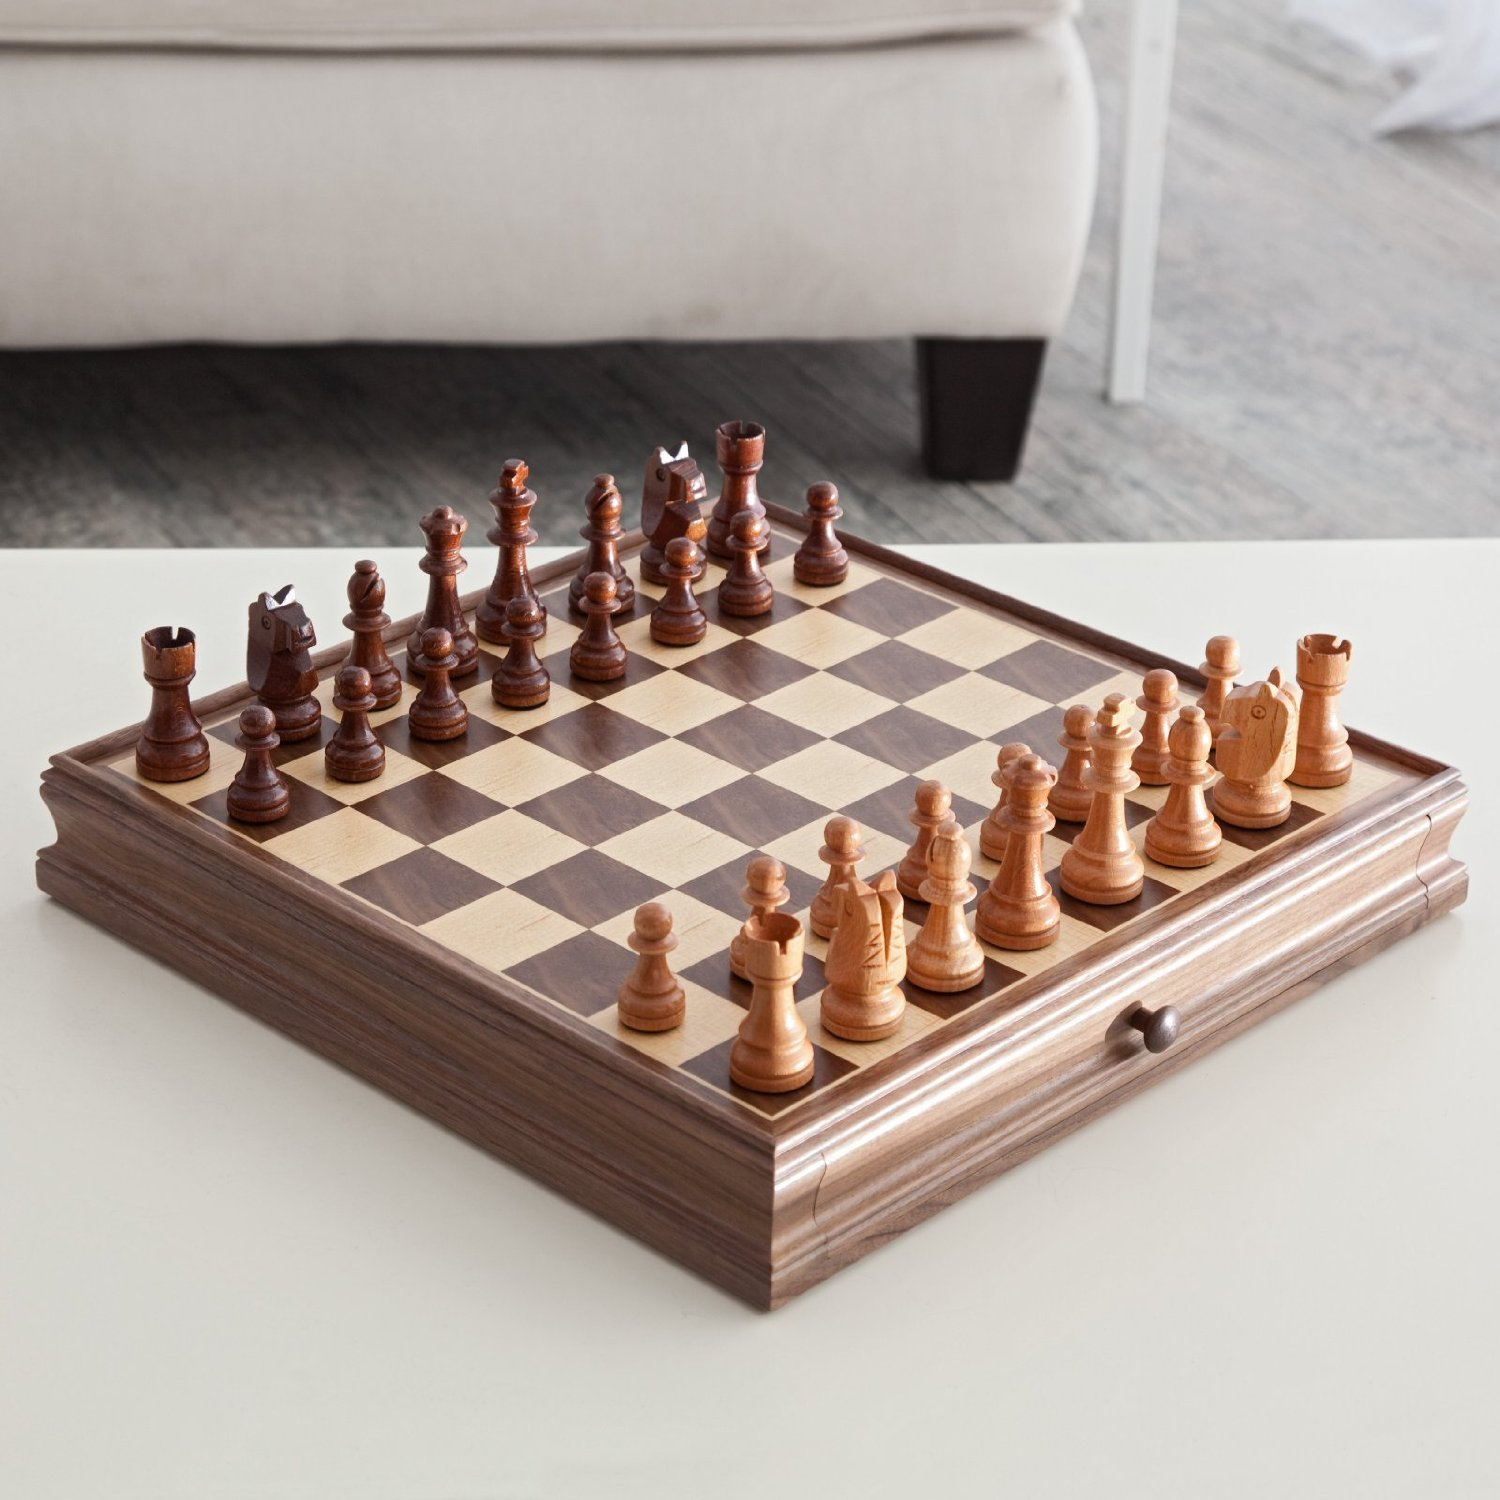 Deluxe Chess & Checker Game Gift Set with Bonus Storage Playing Board, Walnut